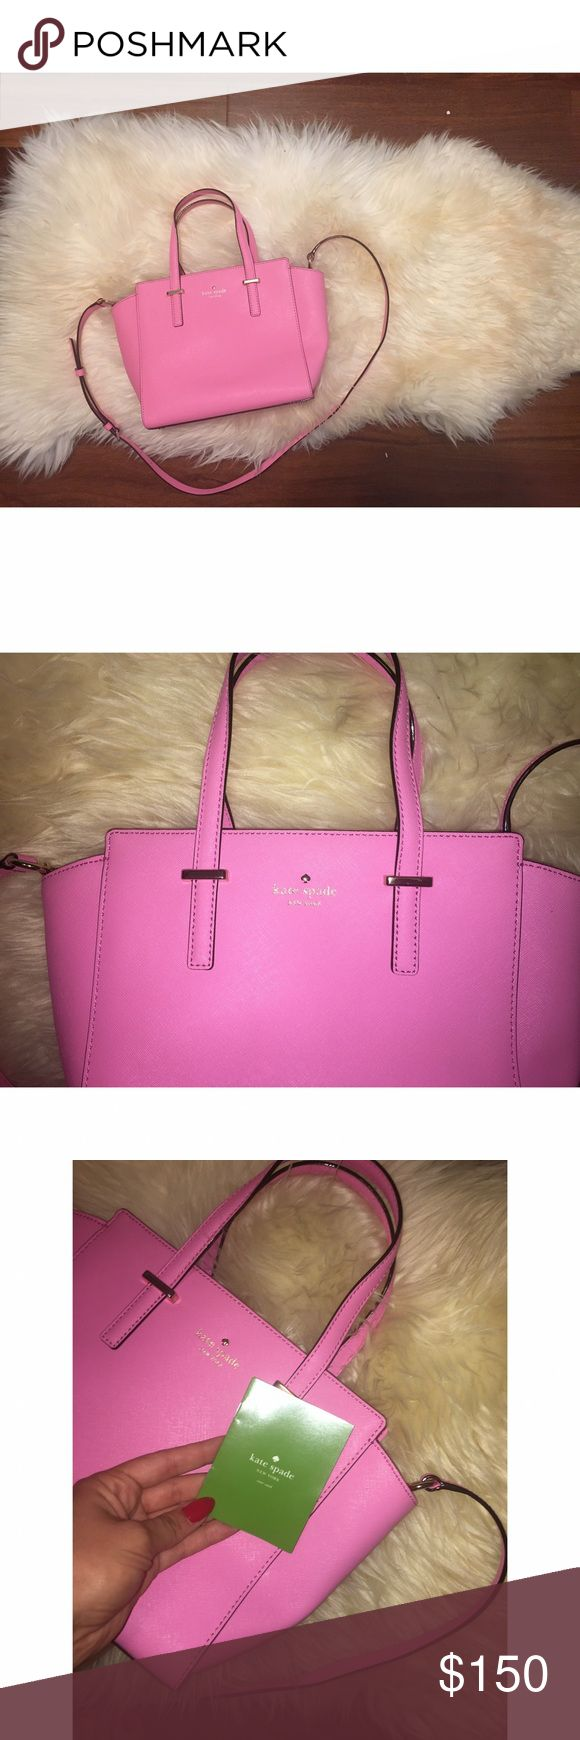 NWT Kate Spade Bubblegum Pink Bag 💕 This is a brand new, never been used purse from Kate Spade. It was purchased at Nordstroms 💕 kate spade Bags Mini Bags